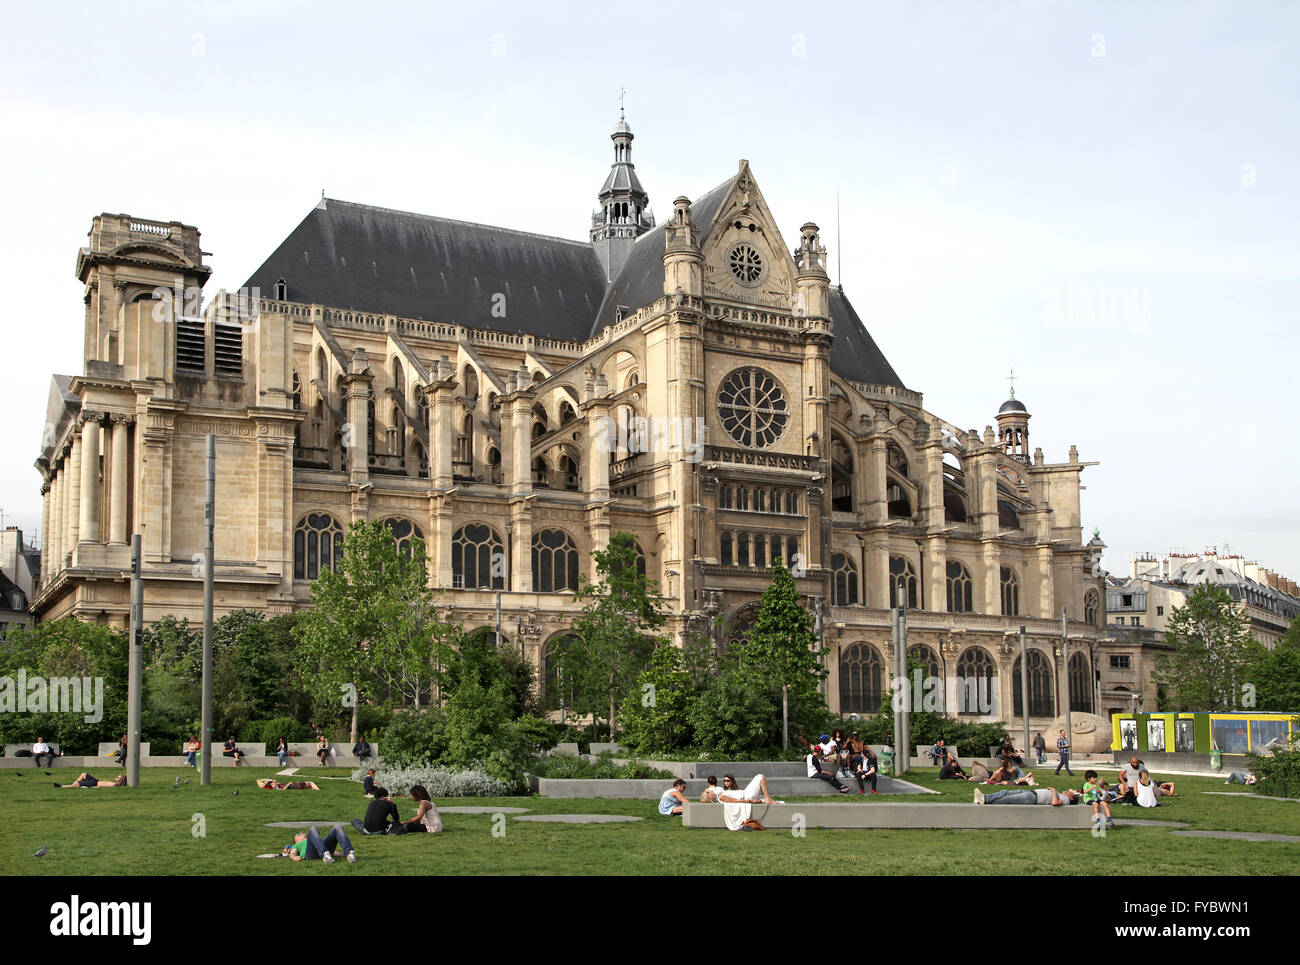 People relaxing.Church of St Eustache Eglise Saint-Eustache and the Nelson Mandela Garden.Paris France. Stock Photo